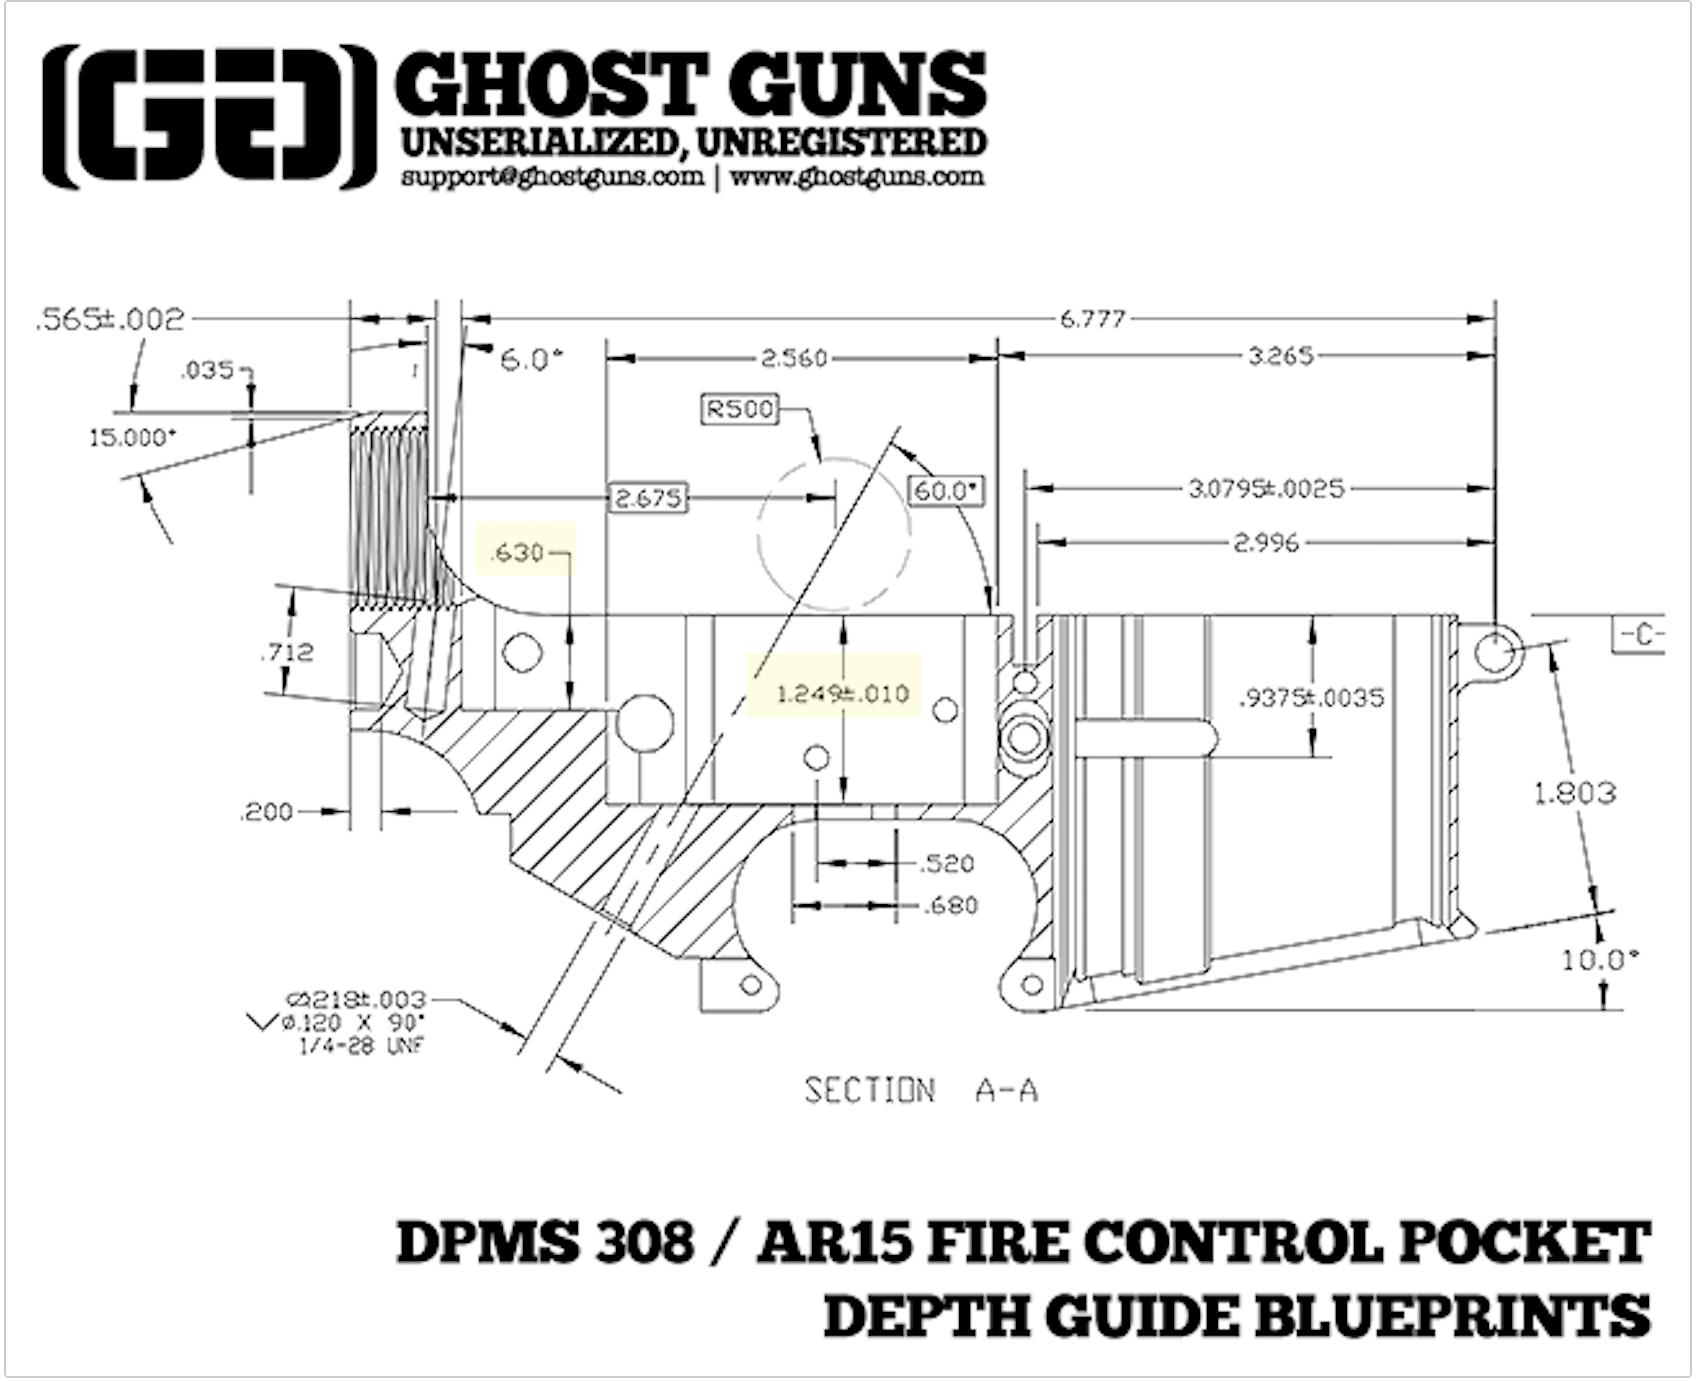 Dpms 308 blueprints for 308 80 lower receiver builds https dpms 308 blueprints for 308 80 lower receiver builds https malvernweather